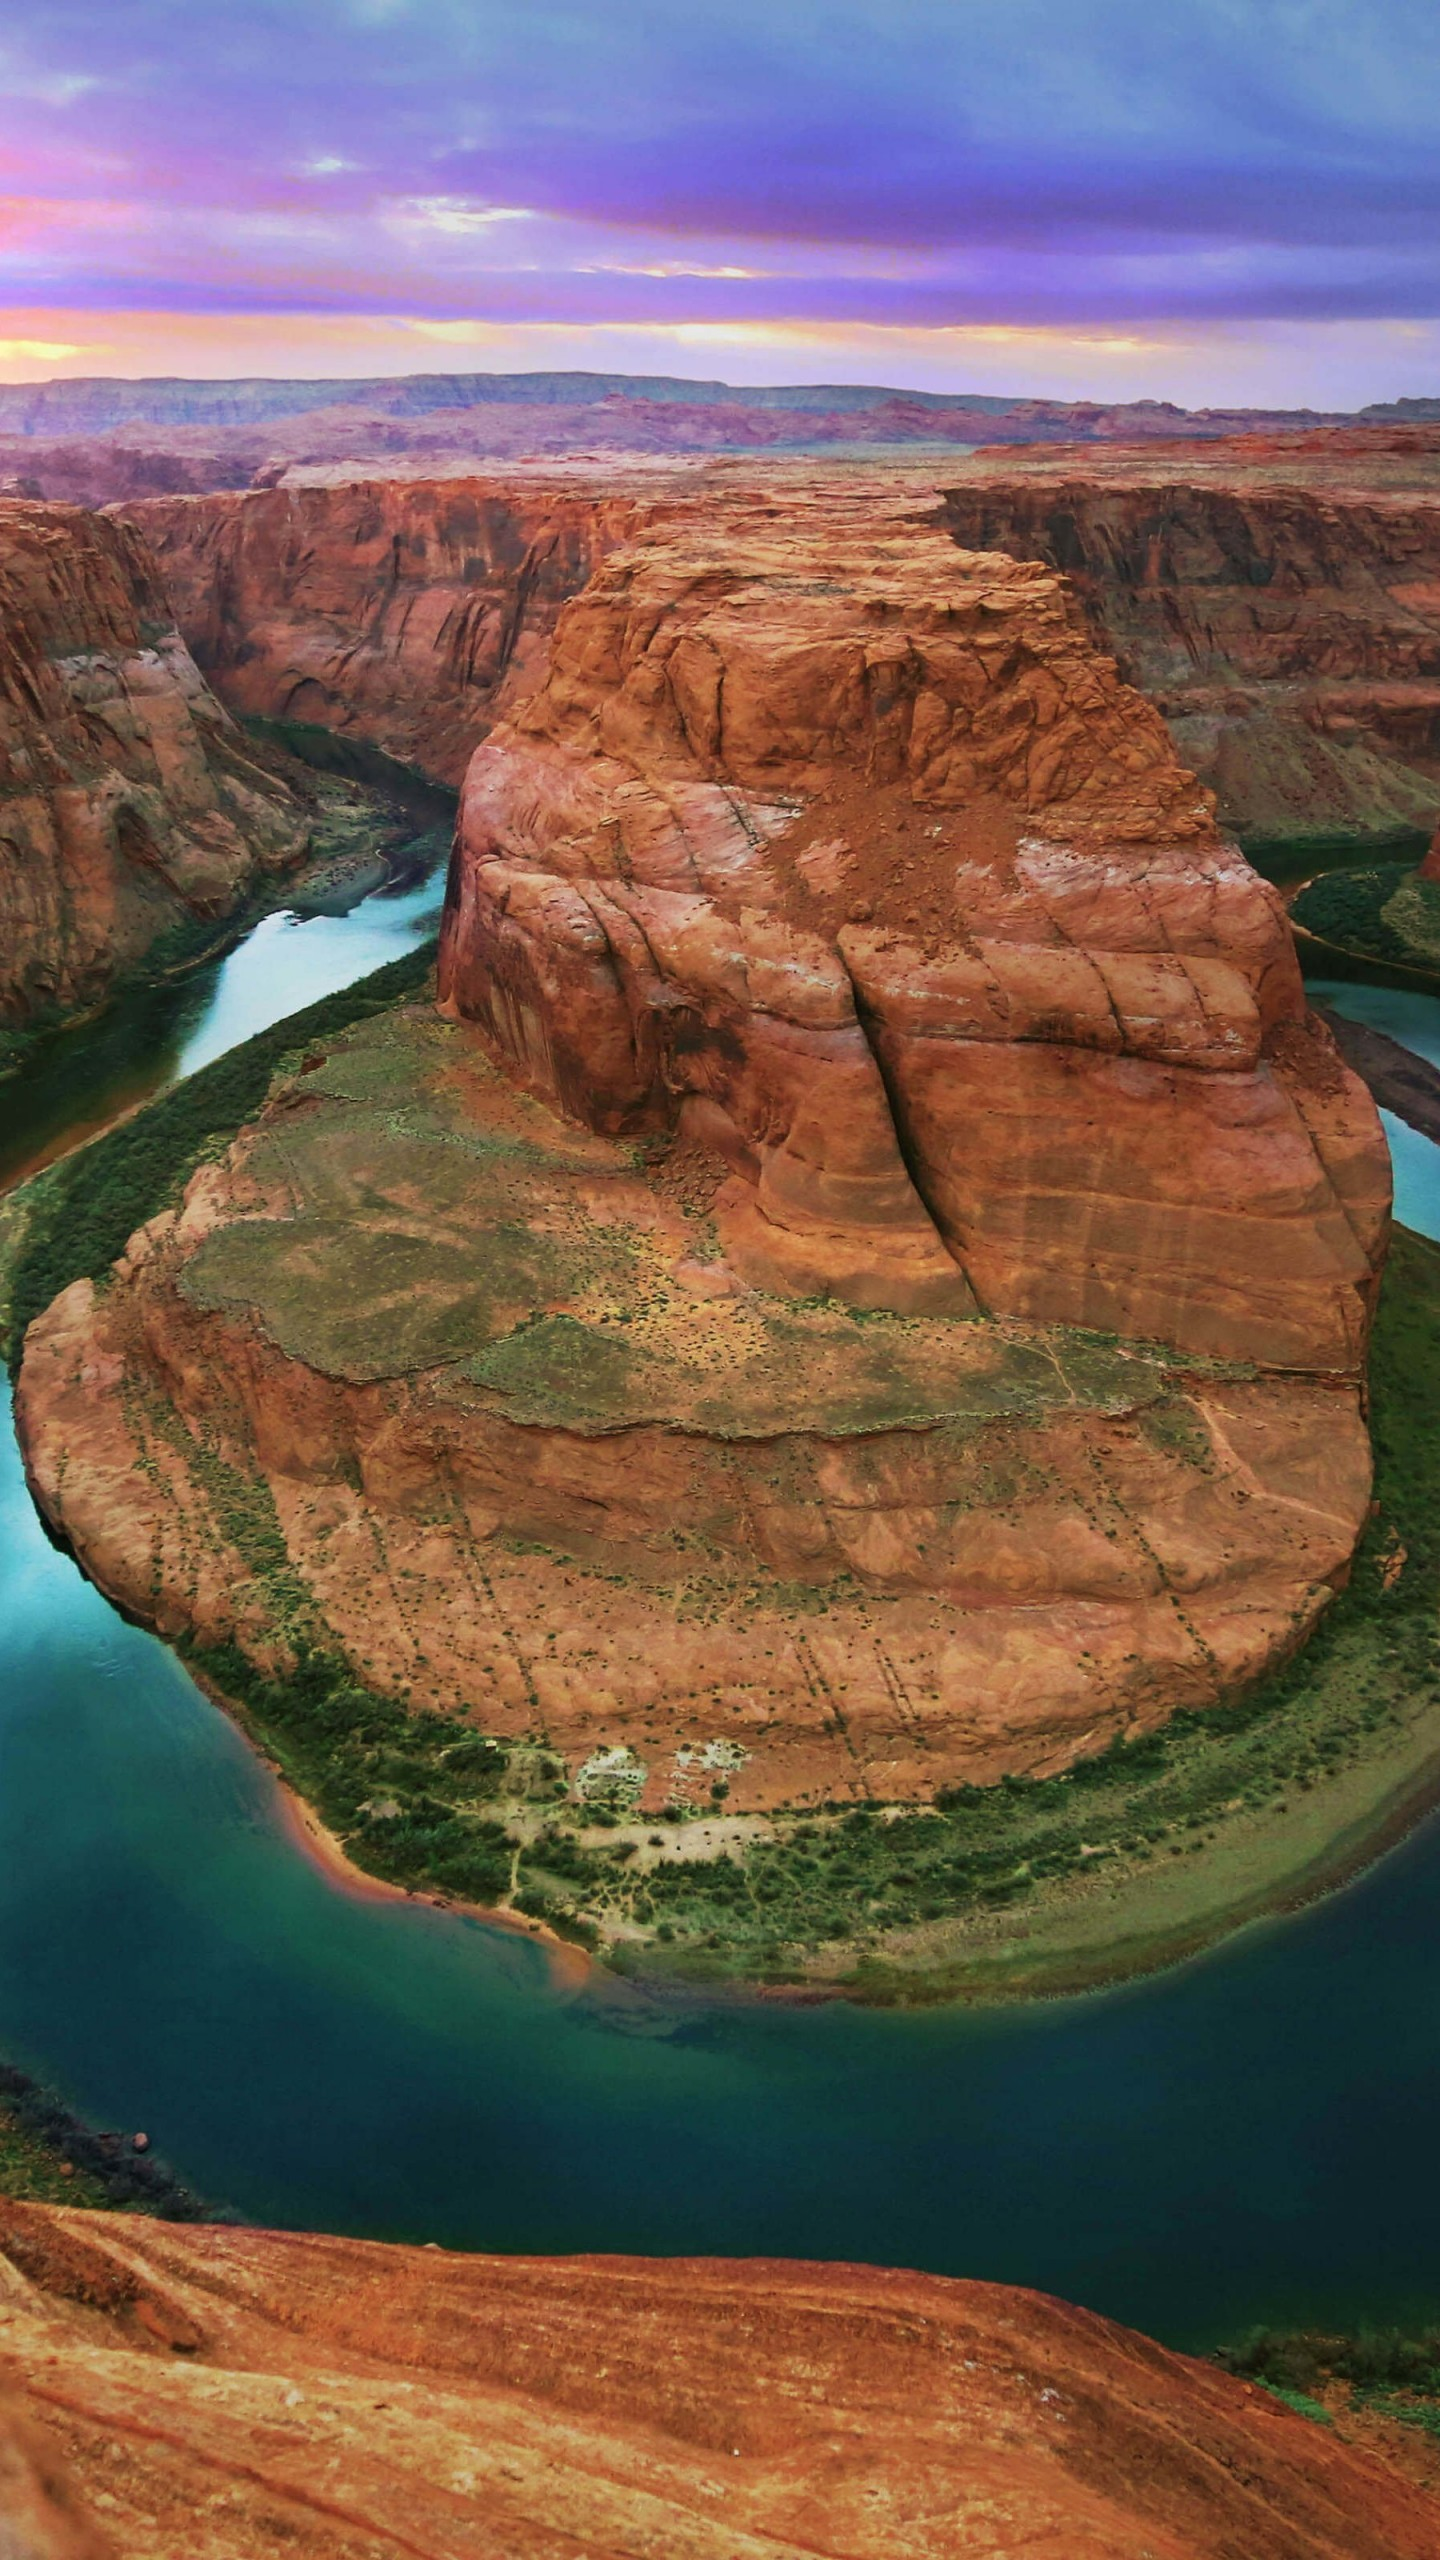 Horseshoe Bend Wallpaper for SAMSUNG Galaxy Note 4